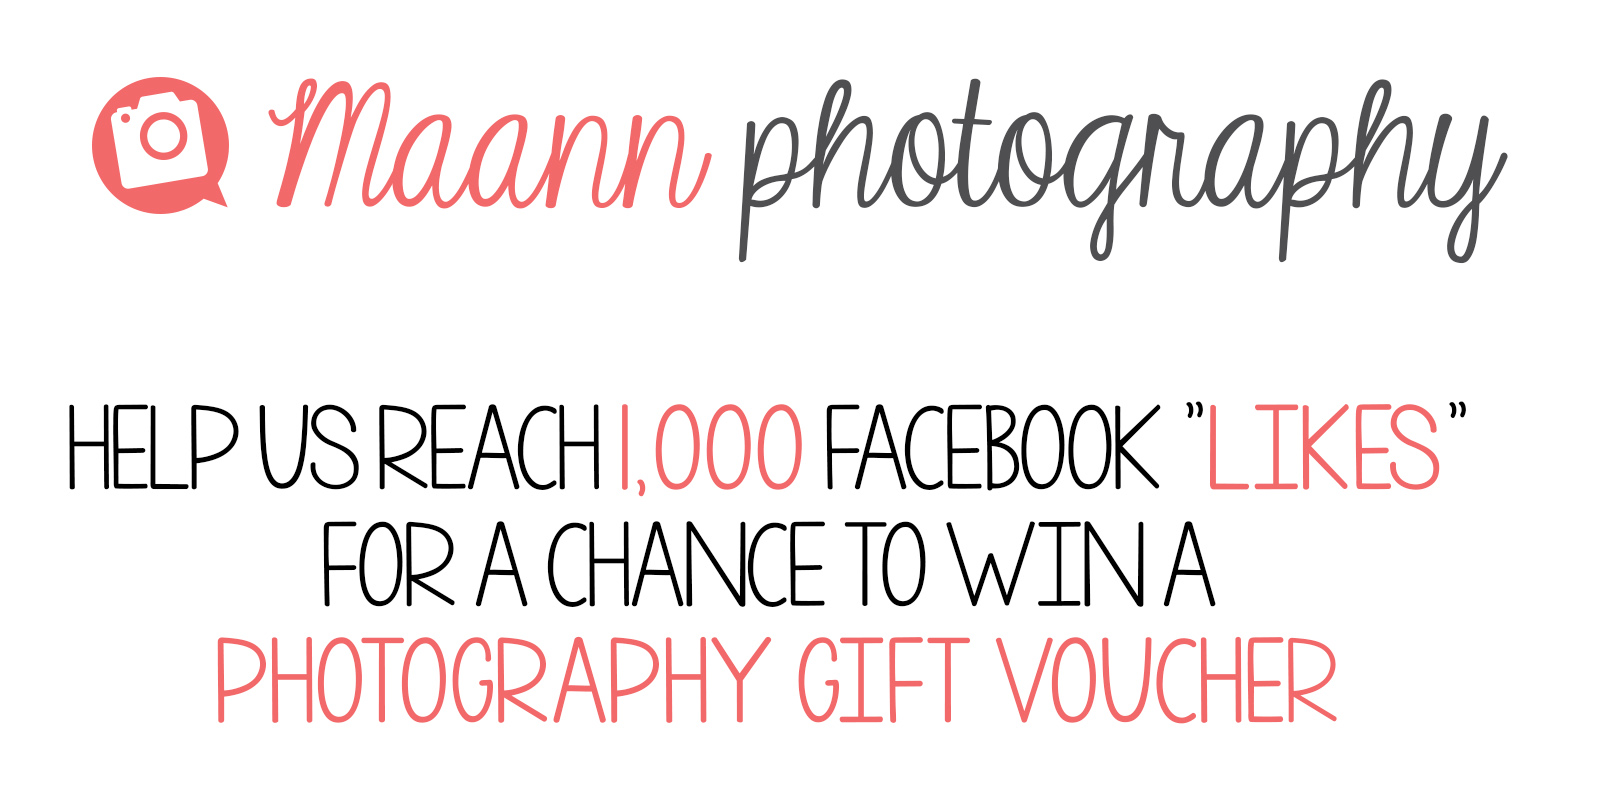 """Help us reach 1,000 Facebook """"Likes"""" for a Chance to Win a PHOTOGRAPHY GIFT VOUCHER"""